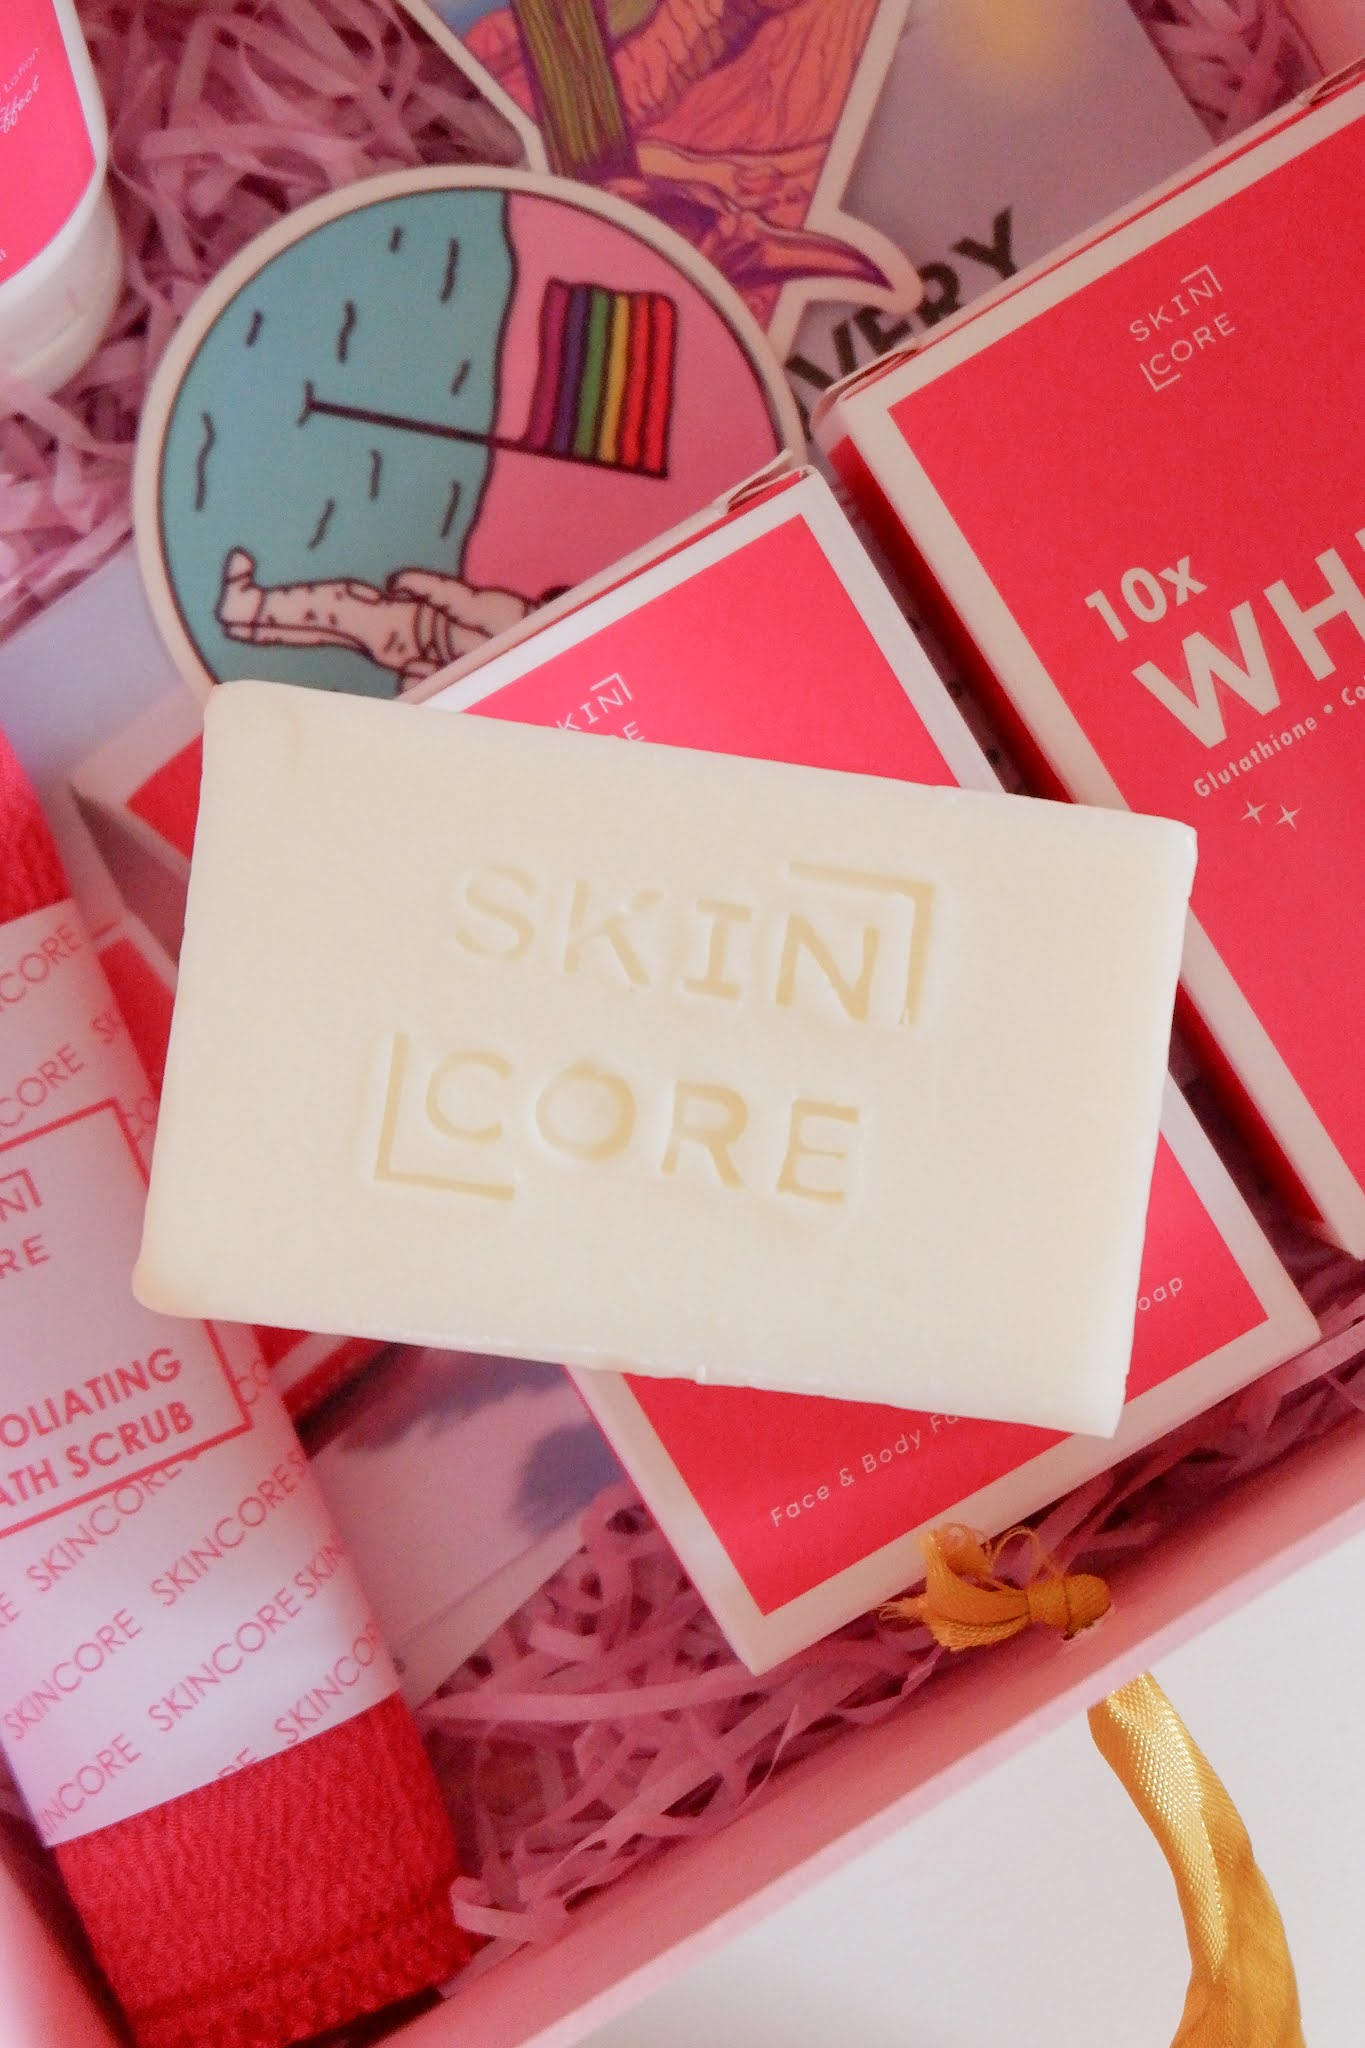 SKINCORE PH - 10X WHITE FAST WHITENING LOTION AND SOAP REVIEW